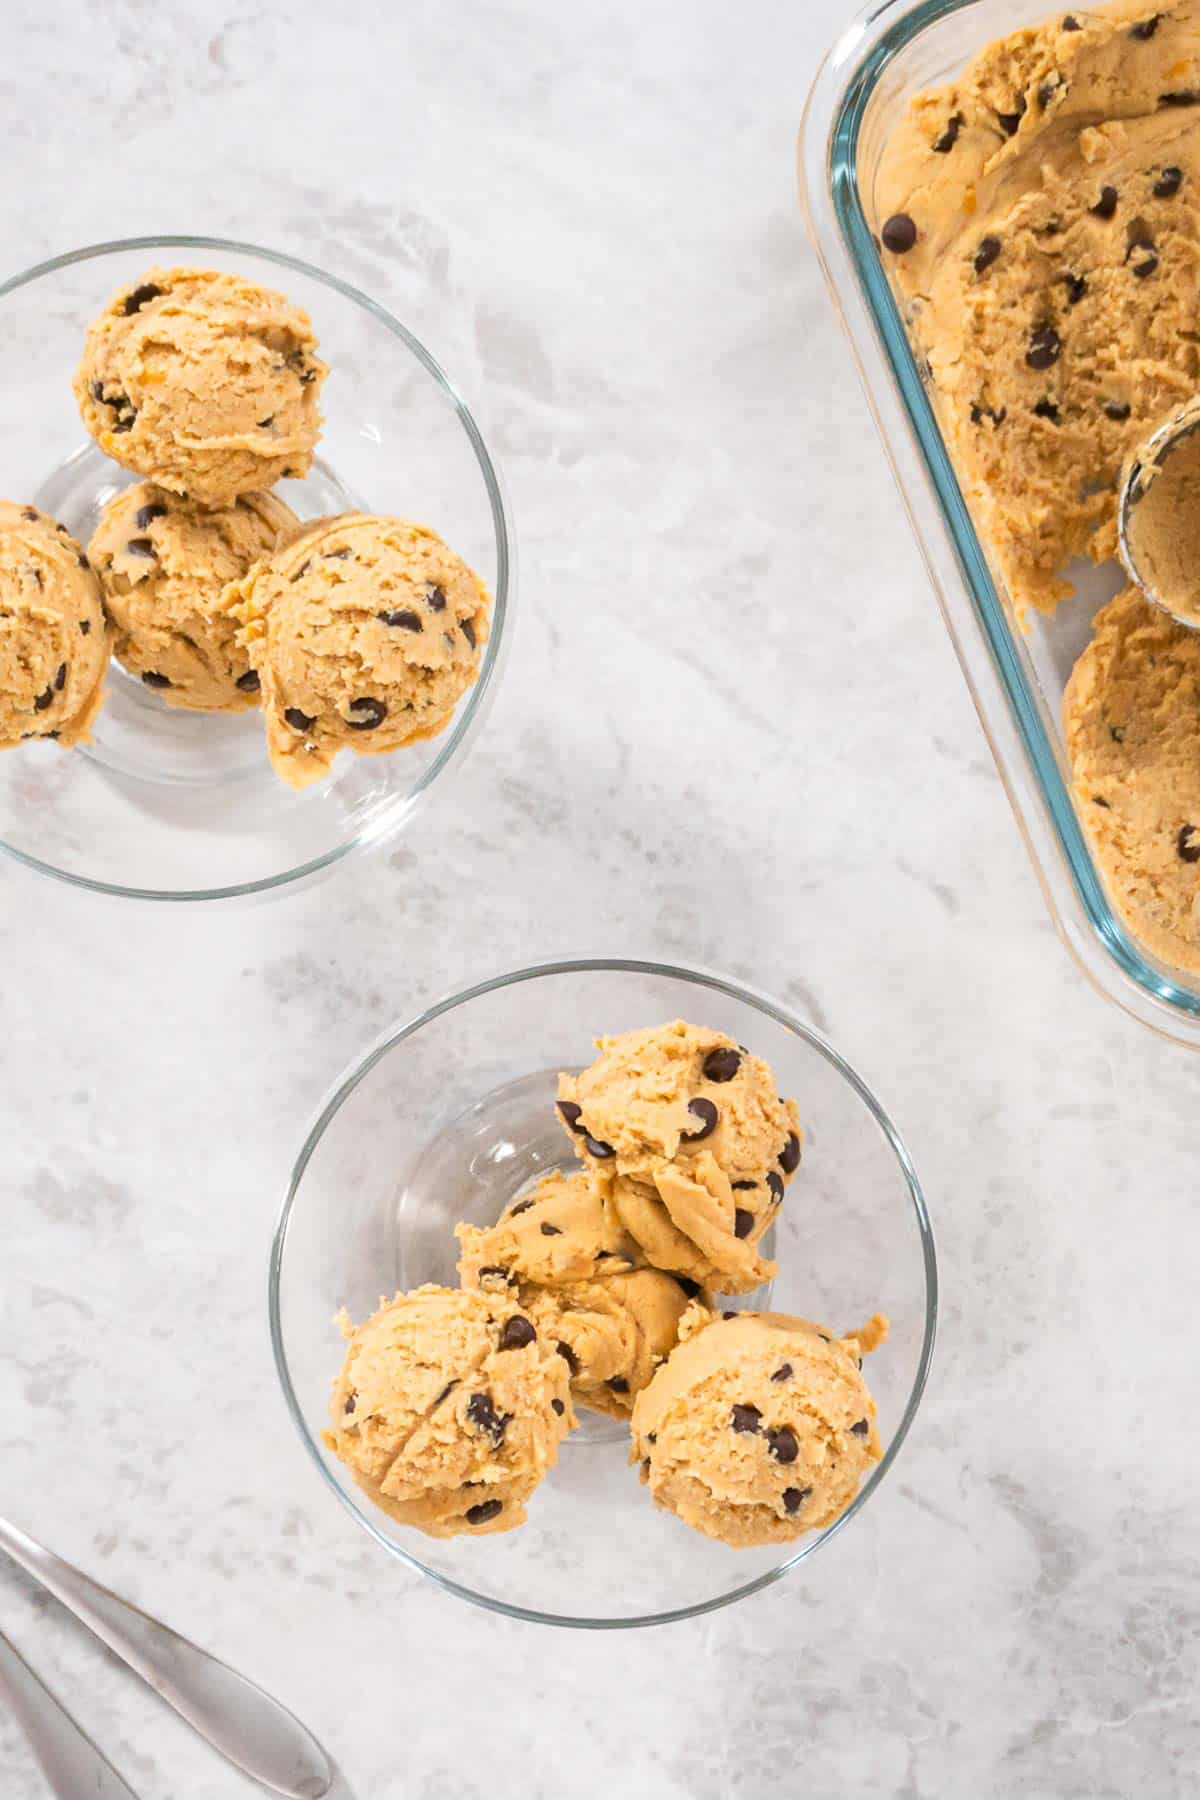 Chickpea Cookie Dough Scooped into bowls